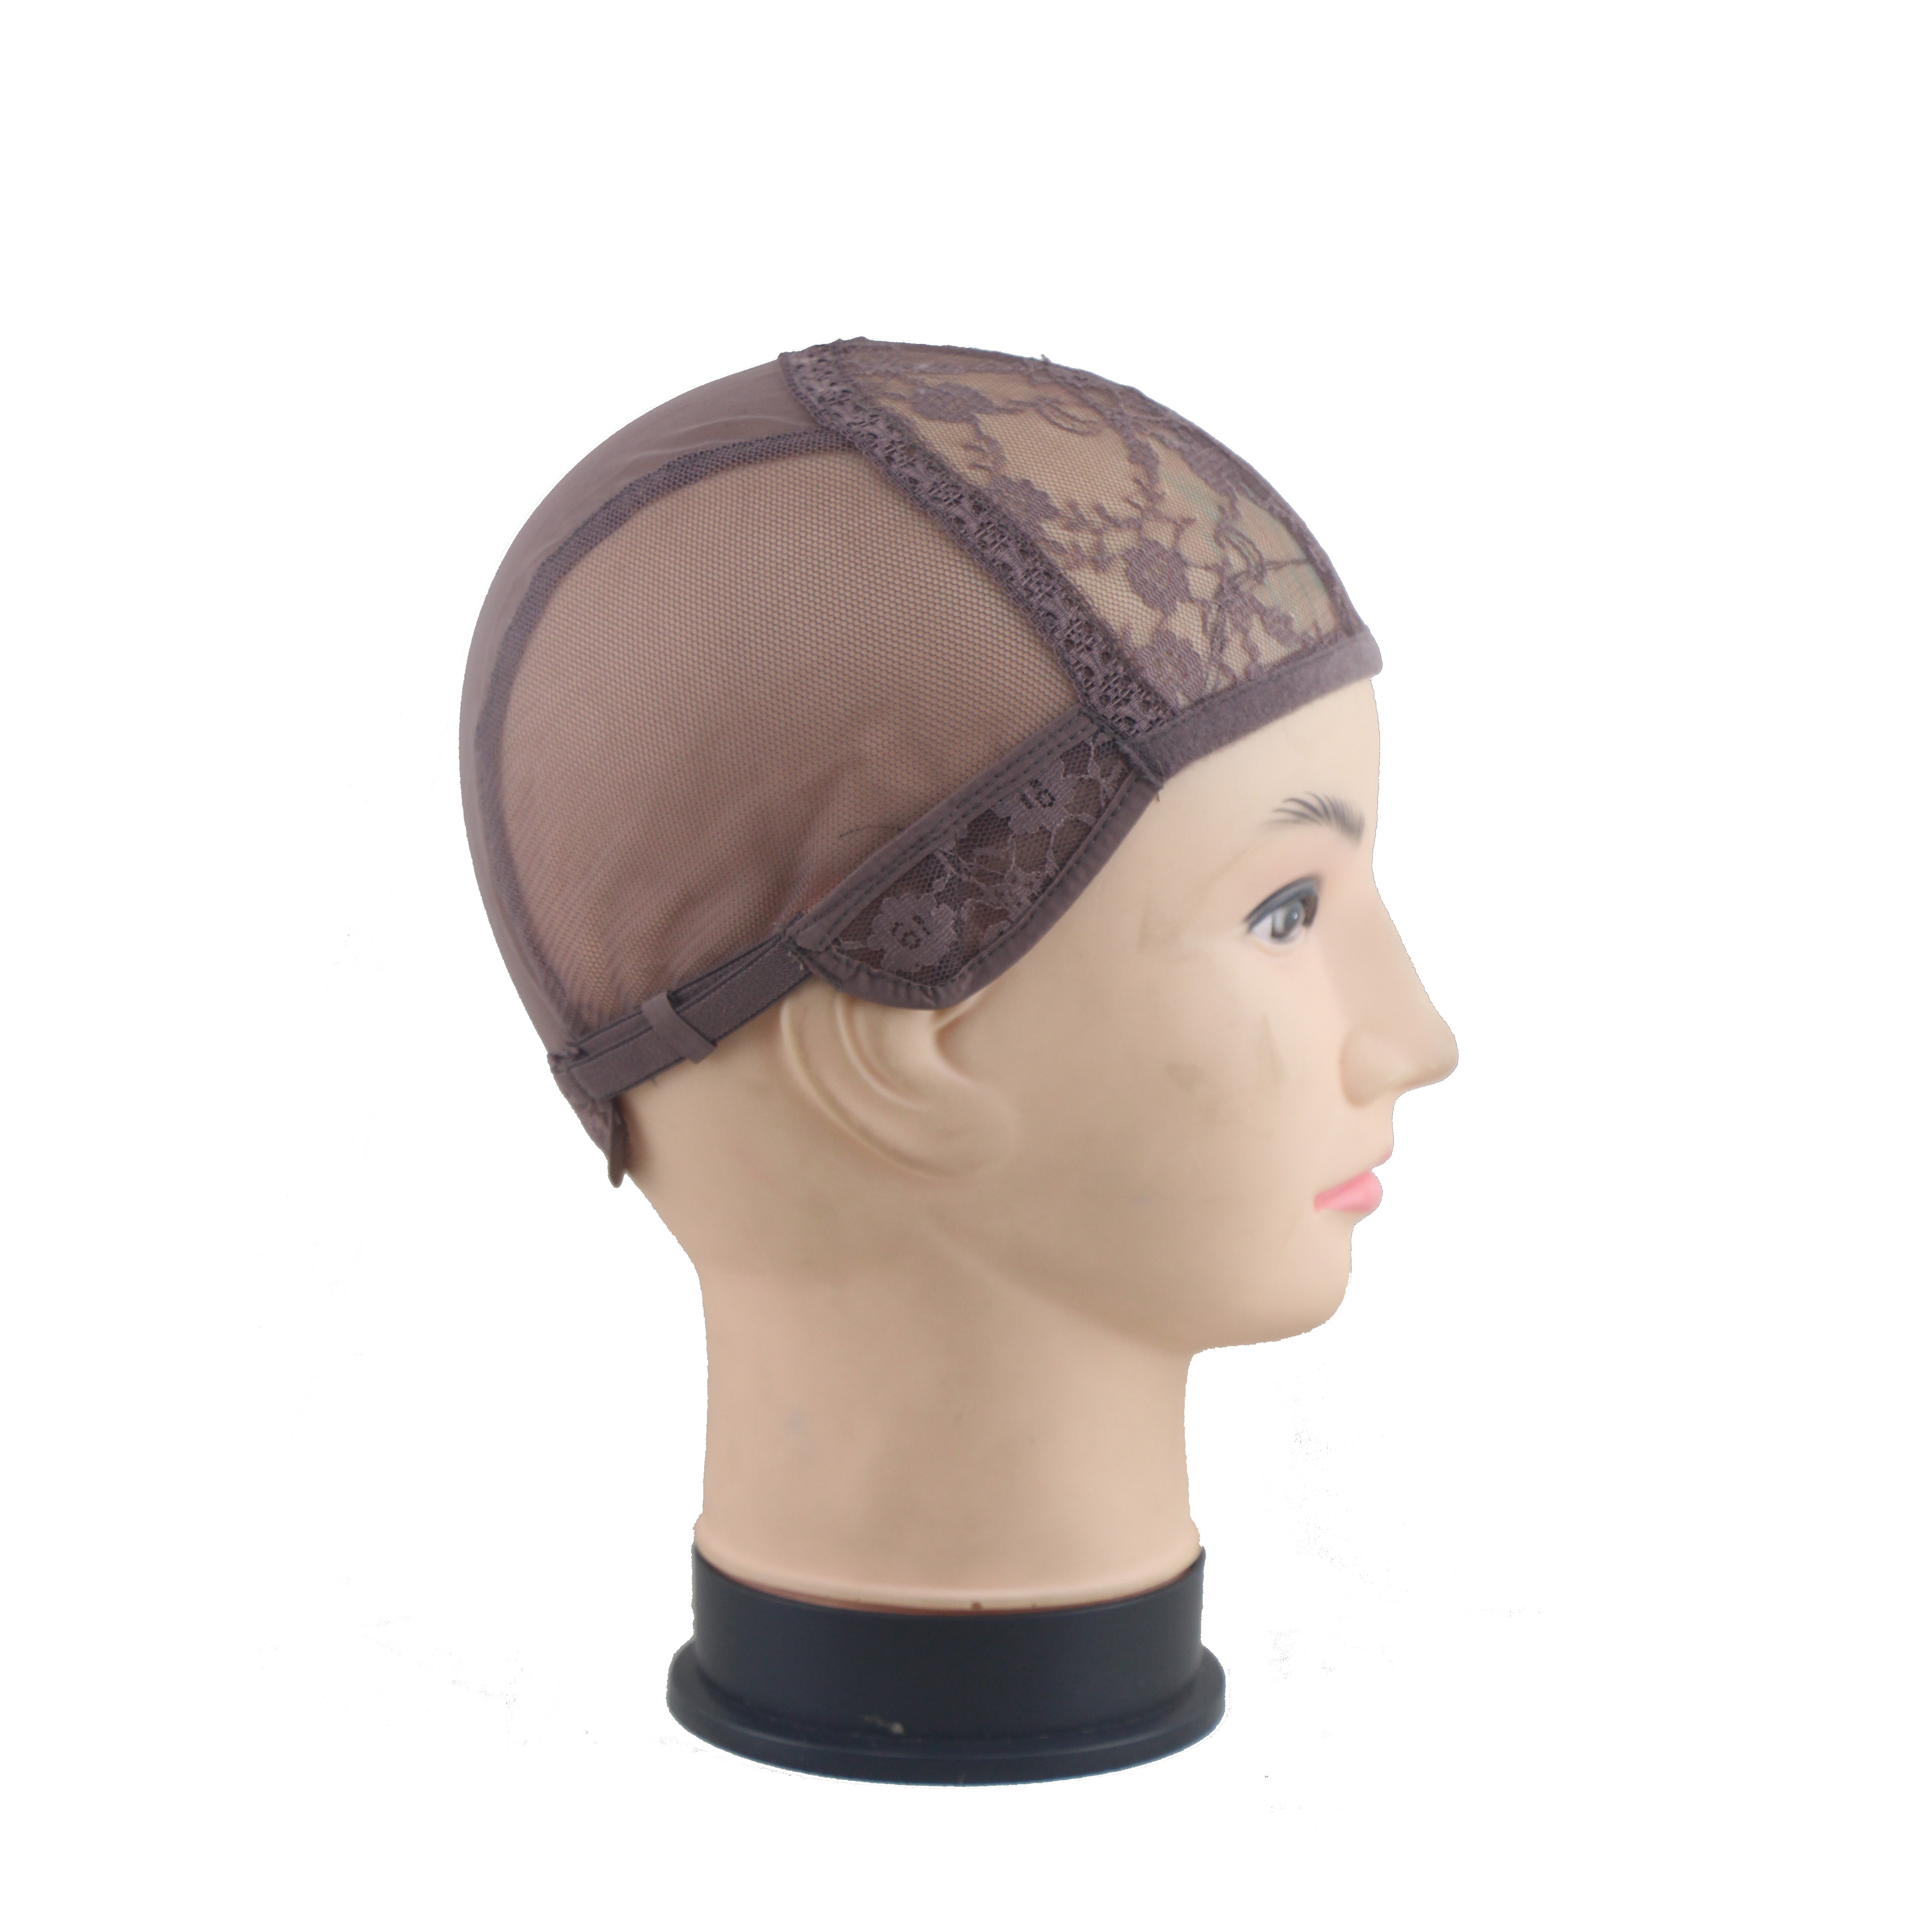 Glueless Wig Cap For Making Wigs